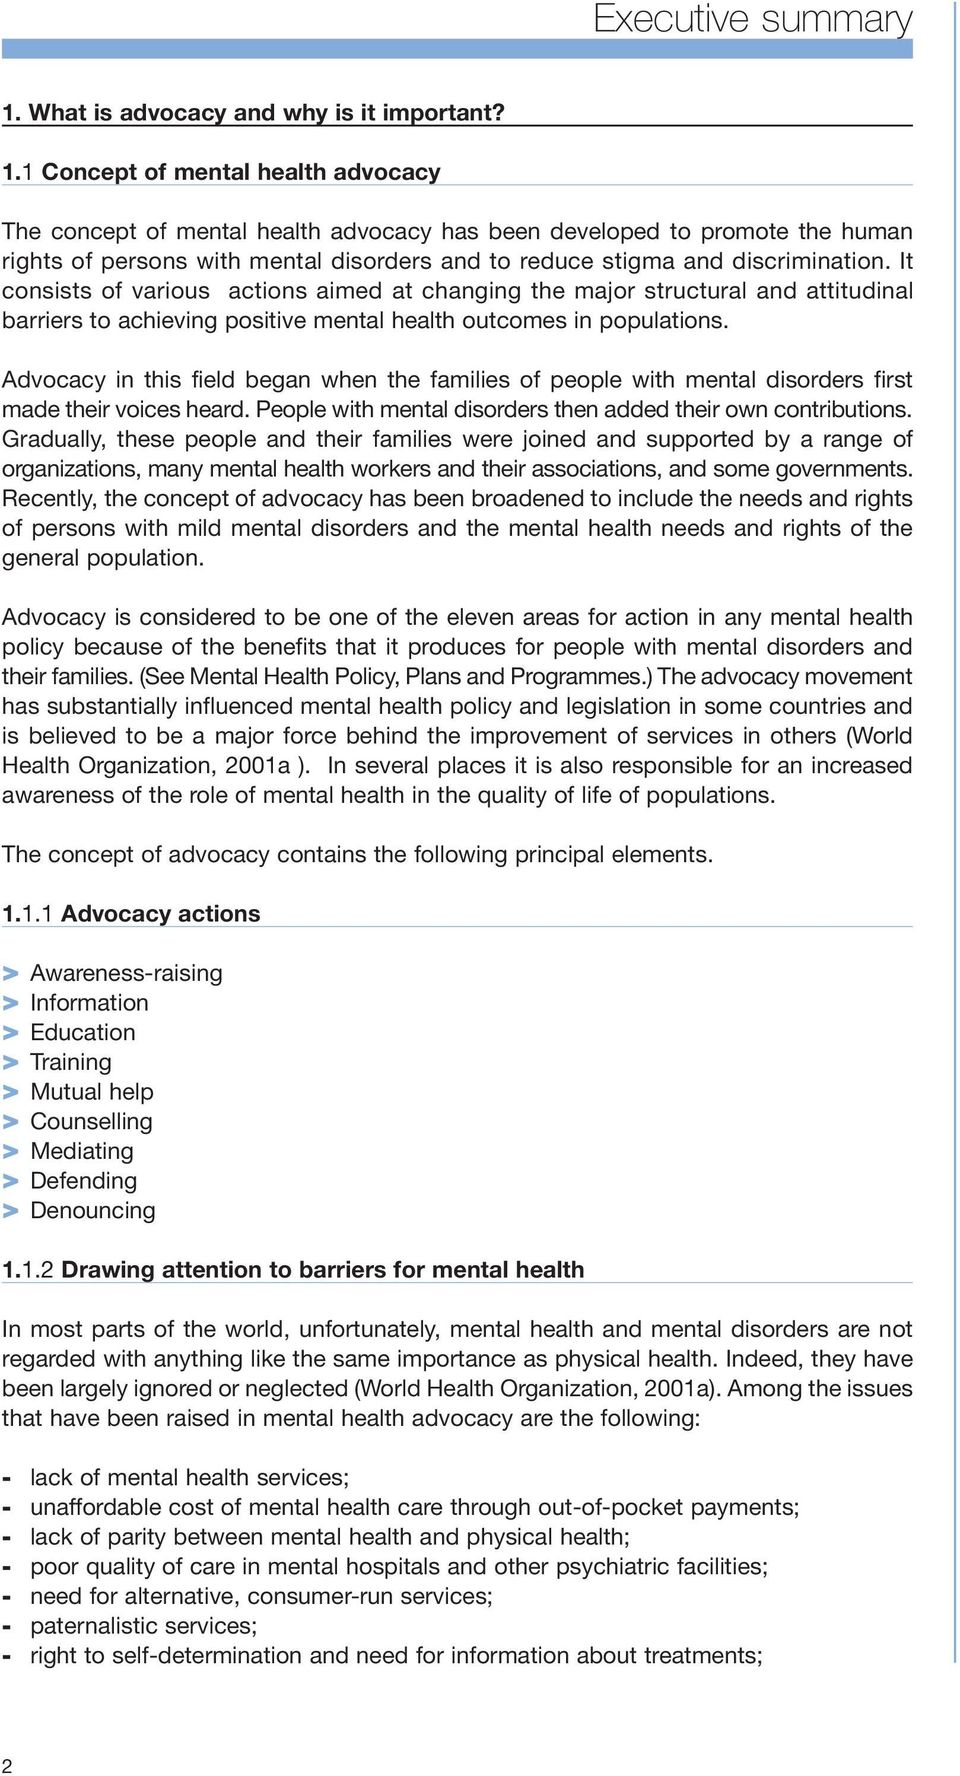 1 Concept of mental health advocacy The concept of mental health advocacy has been developed to promote the human rights of persons with mental disorders and to reduce stigma and discrimination.